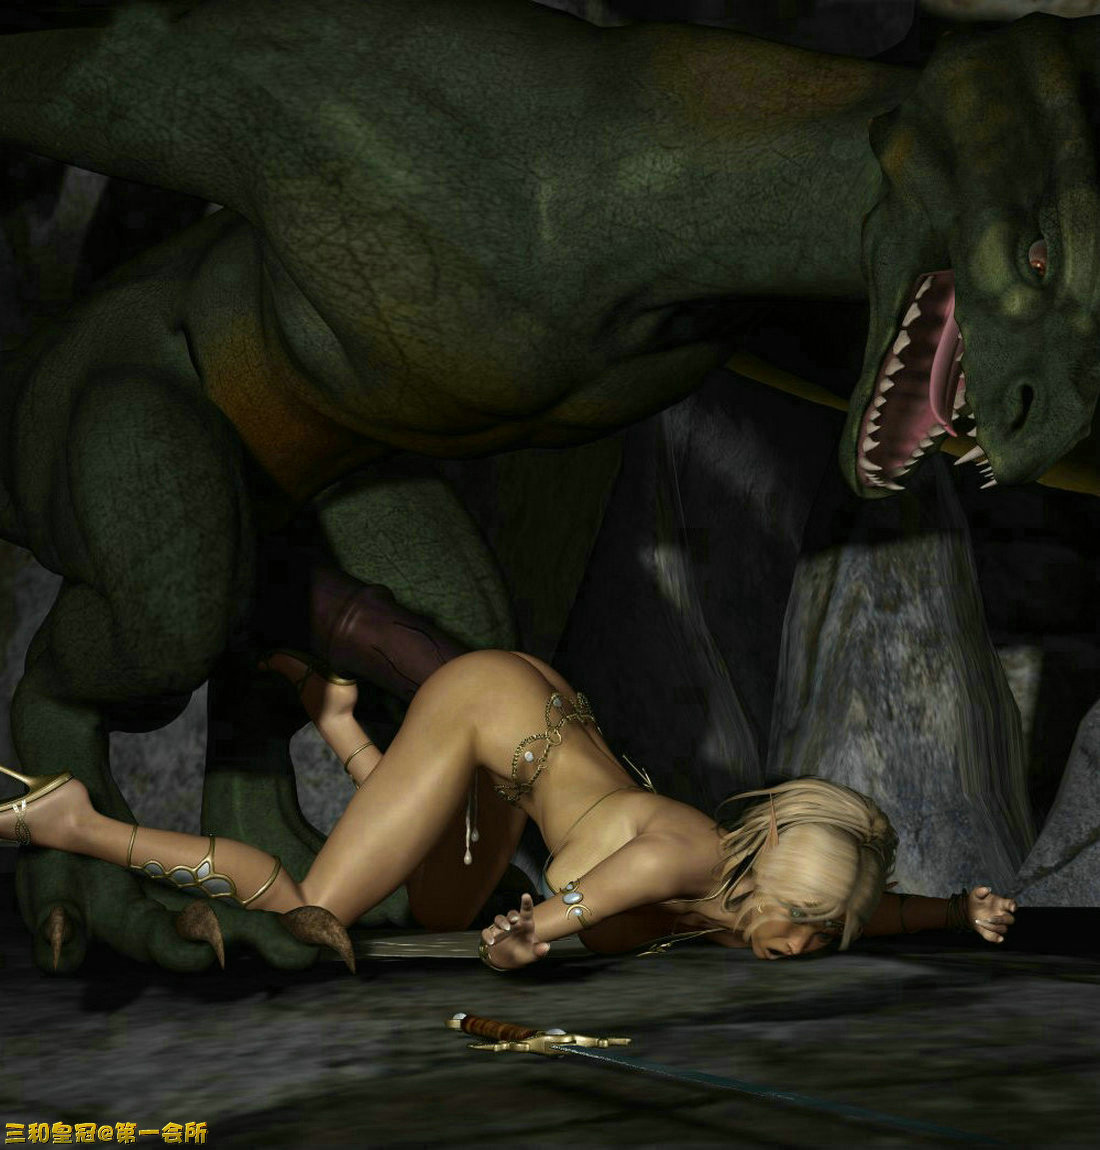 Human woman fucked by dragon video hentia clip